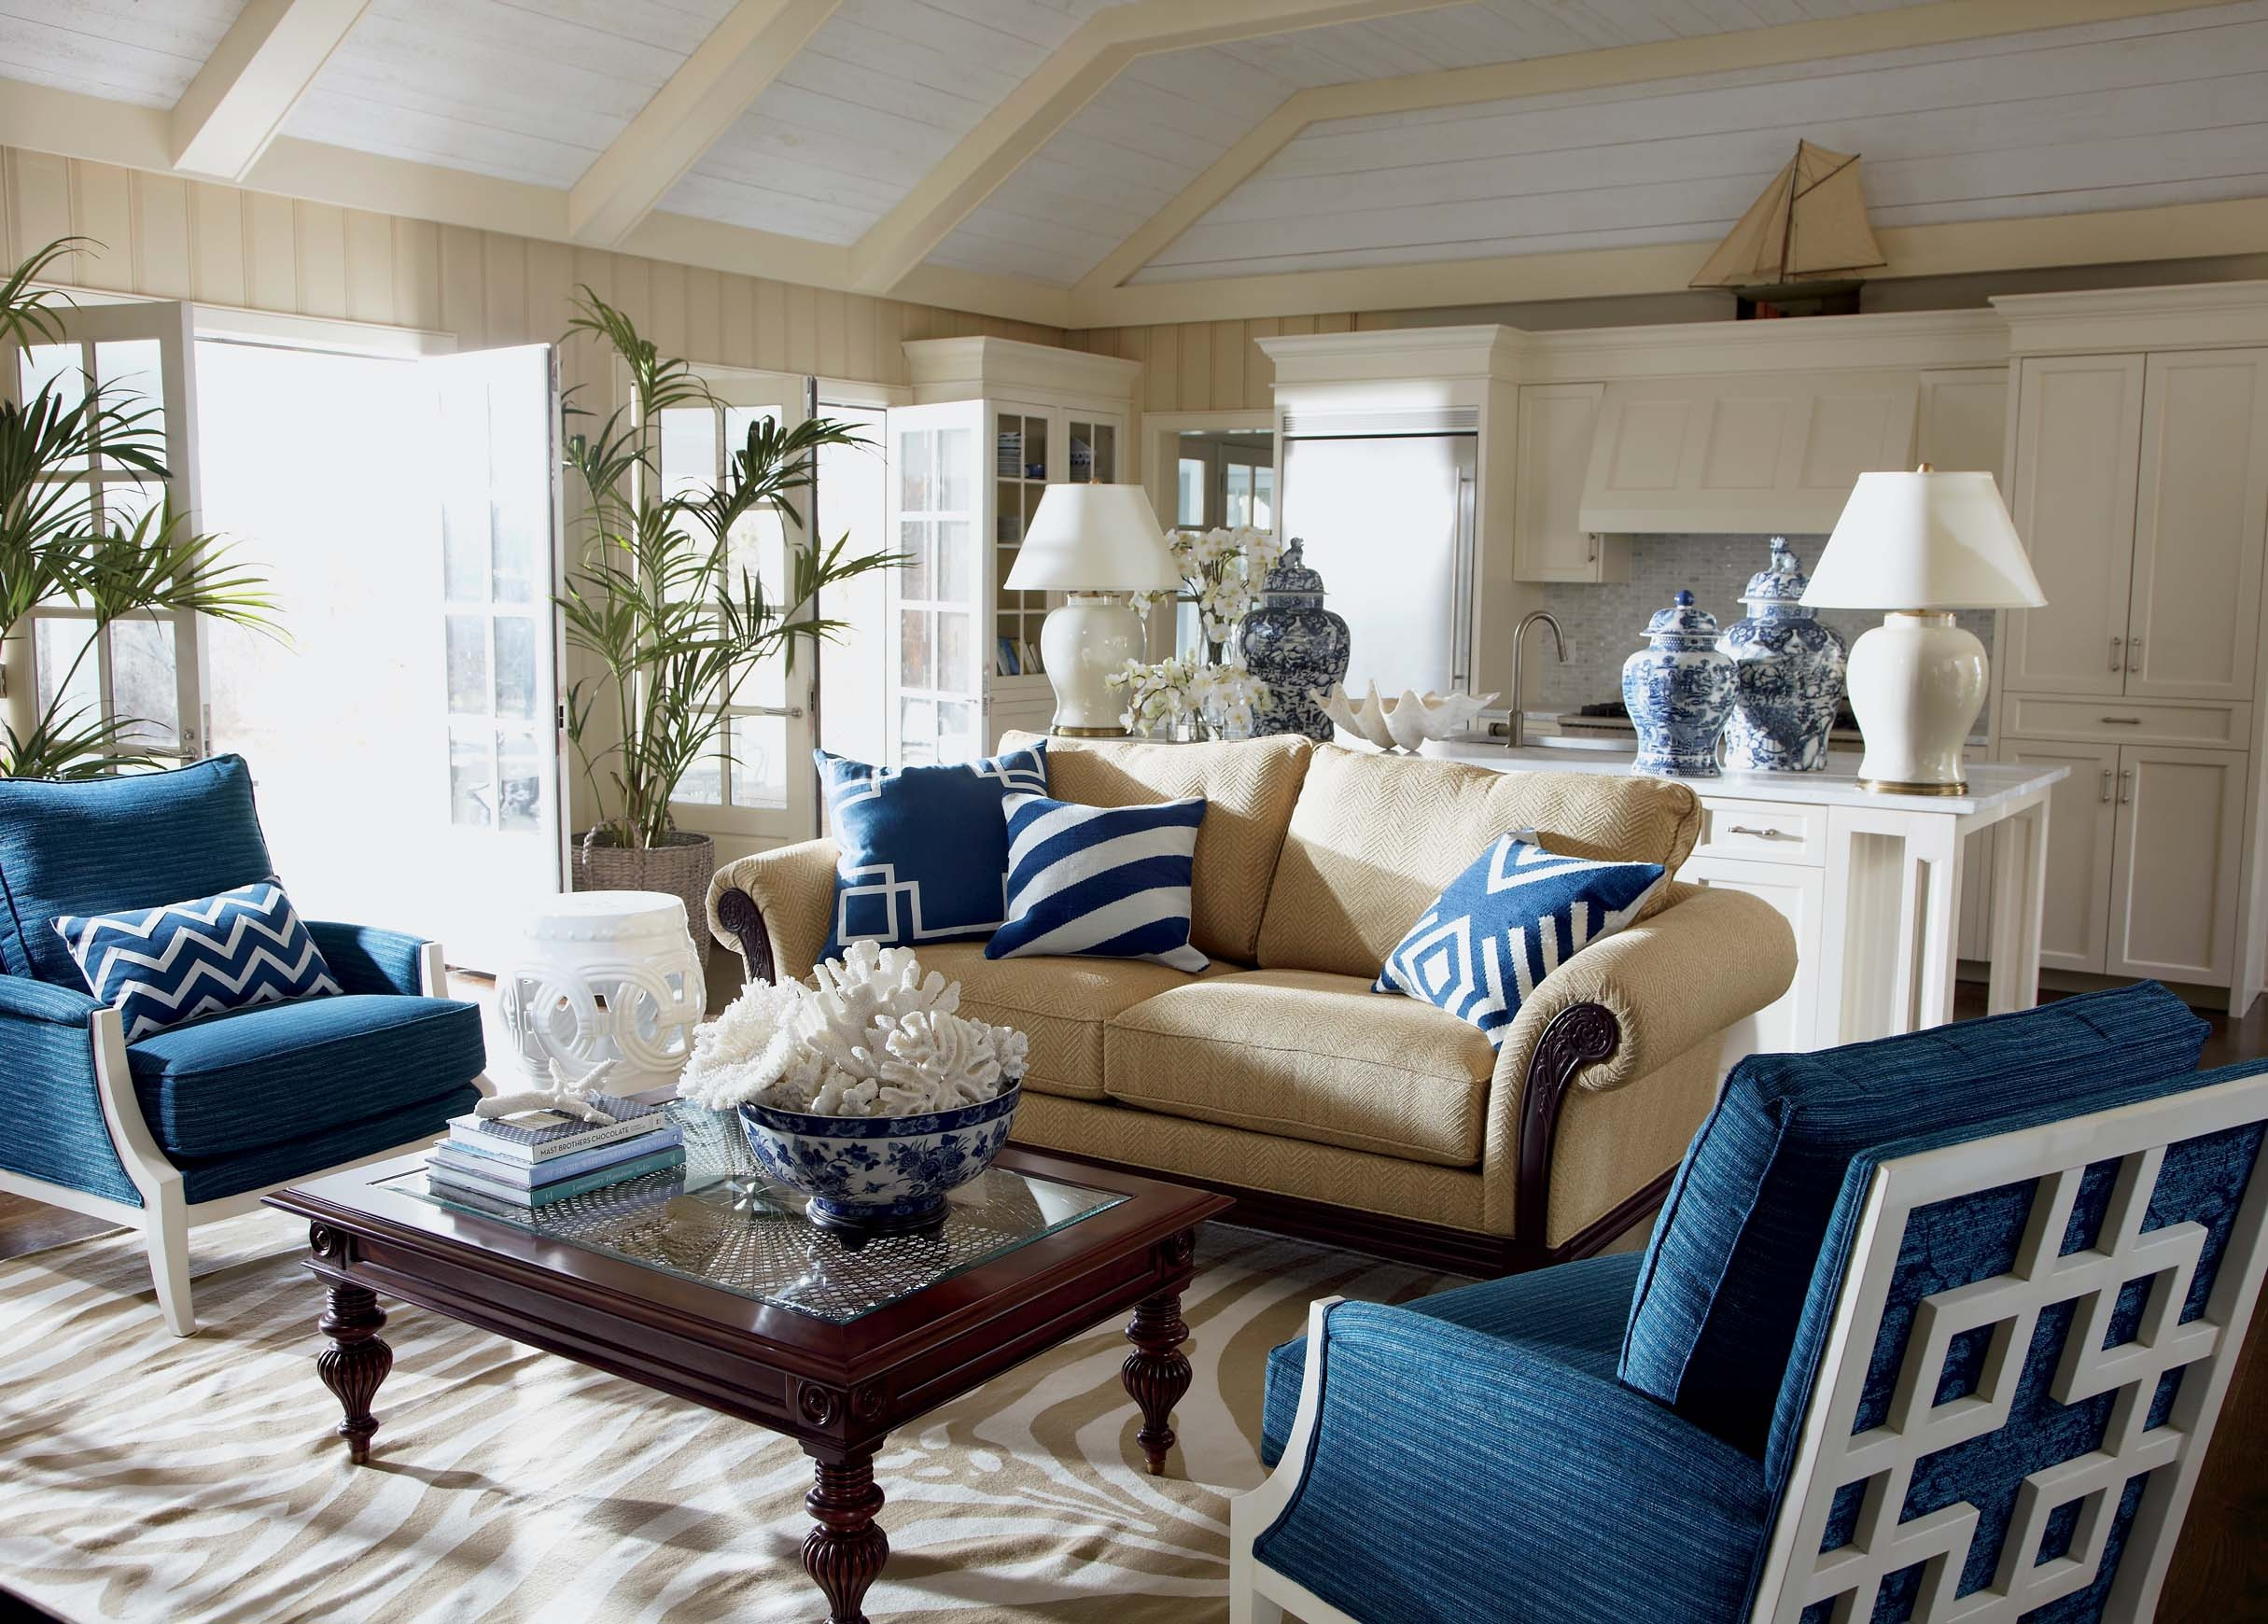 Sea Breeze Living Room Ethan Allen With Regard To Ethan Allen Sofas And Chairs (Image 13 of 15)